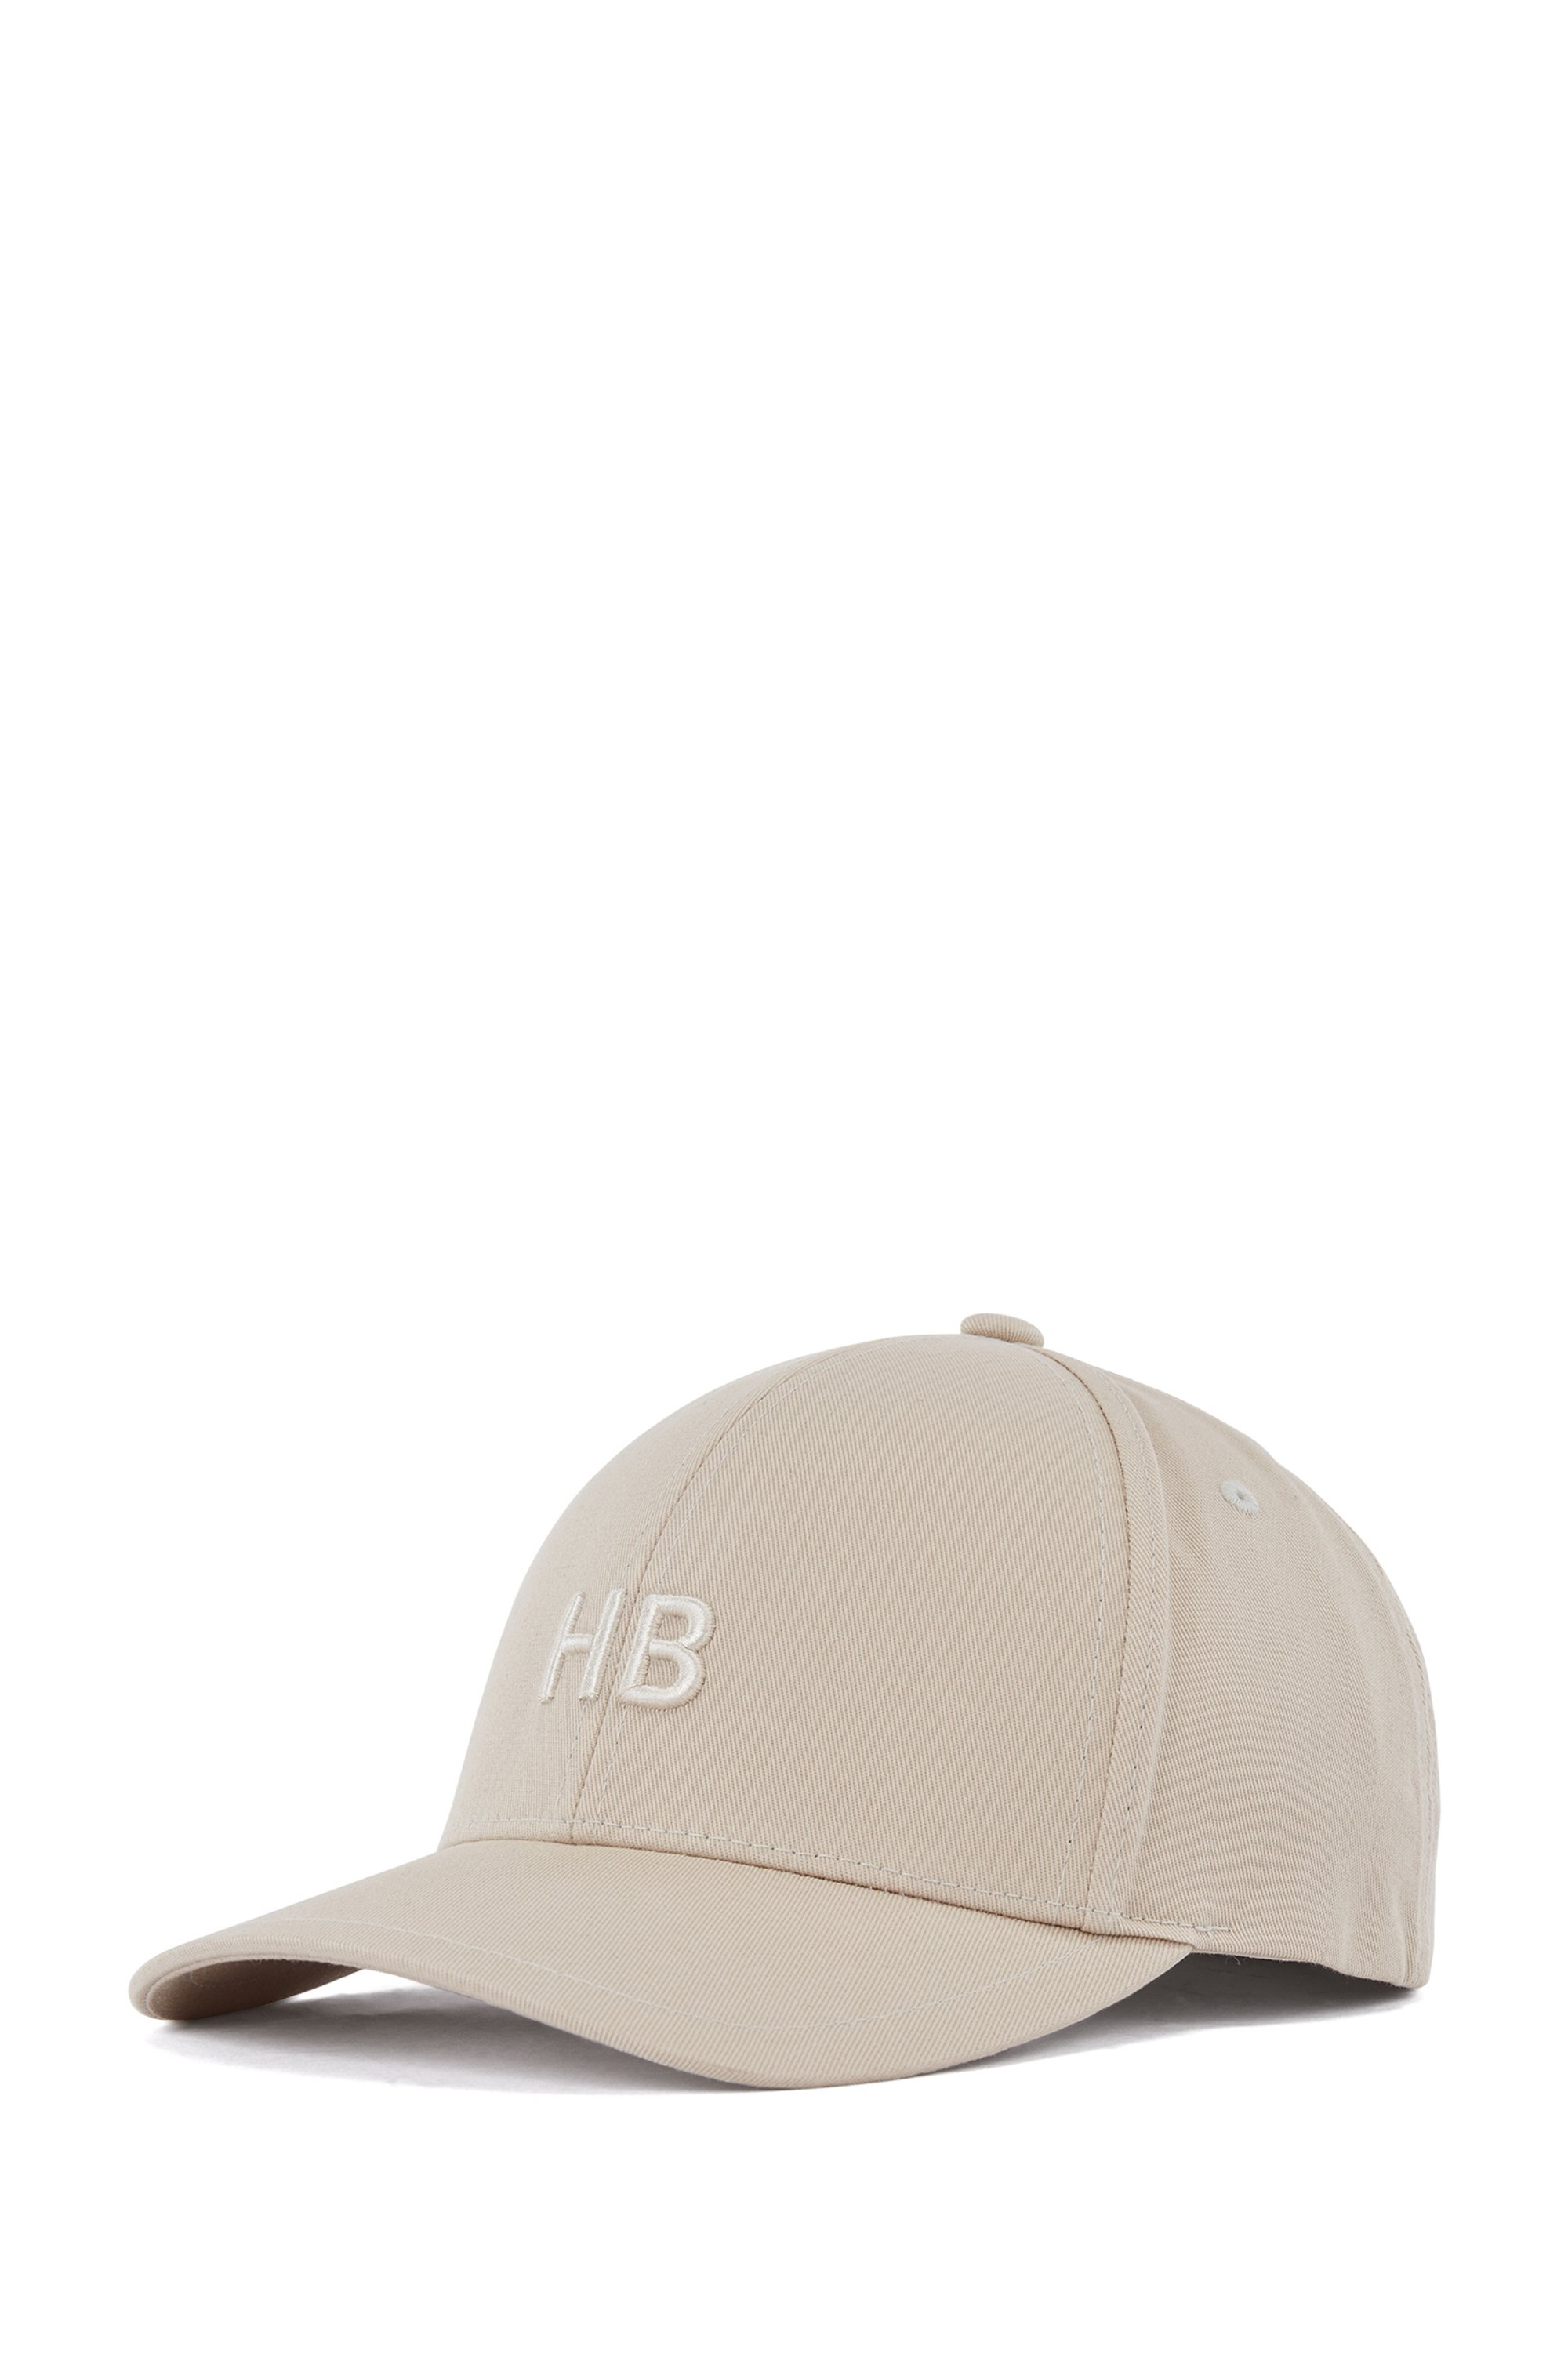 Monogram cap in cotton twill, Light Beige